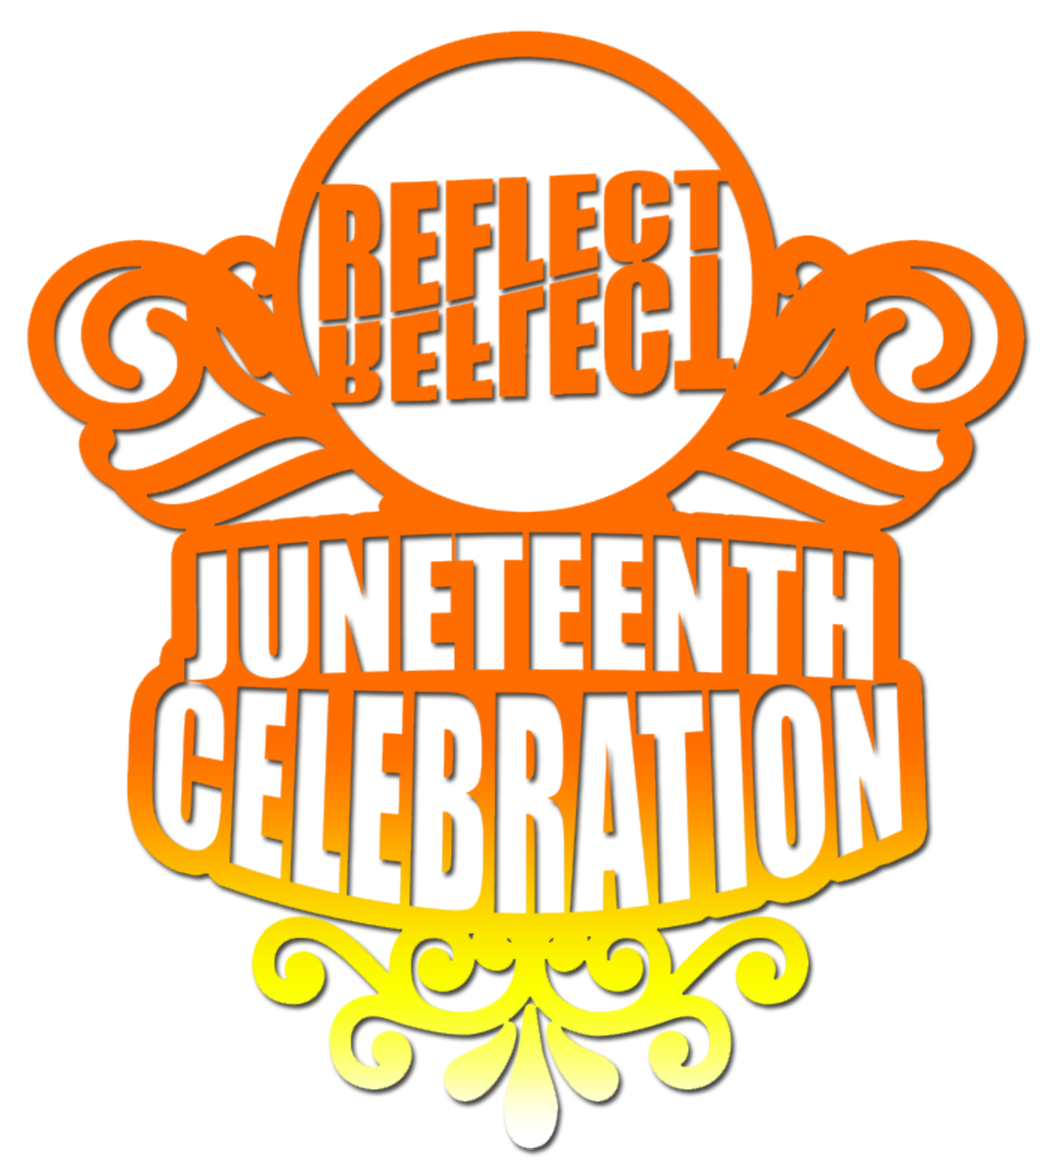 best wish pictures. Freedom clipart juneteenth